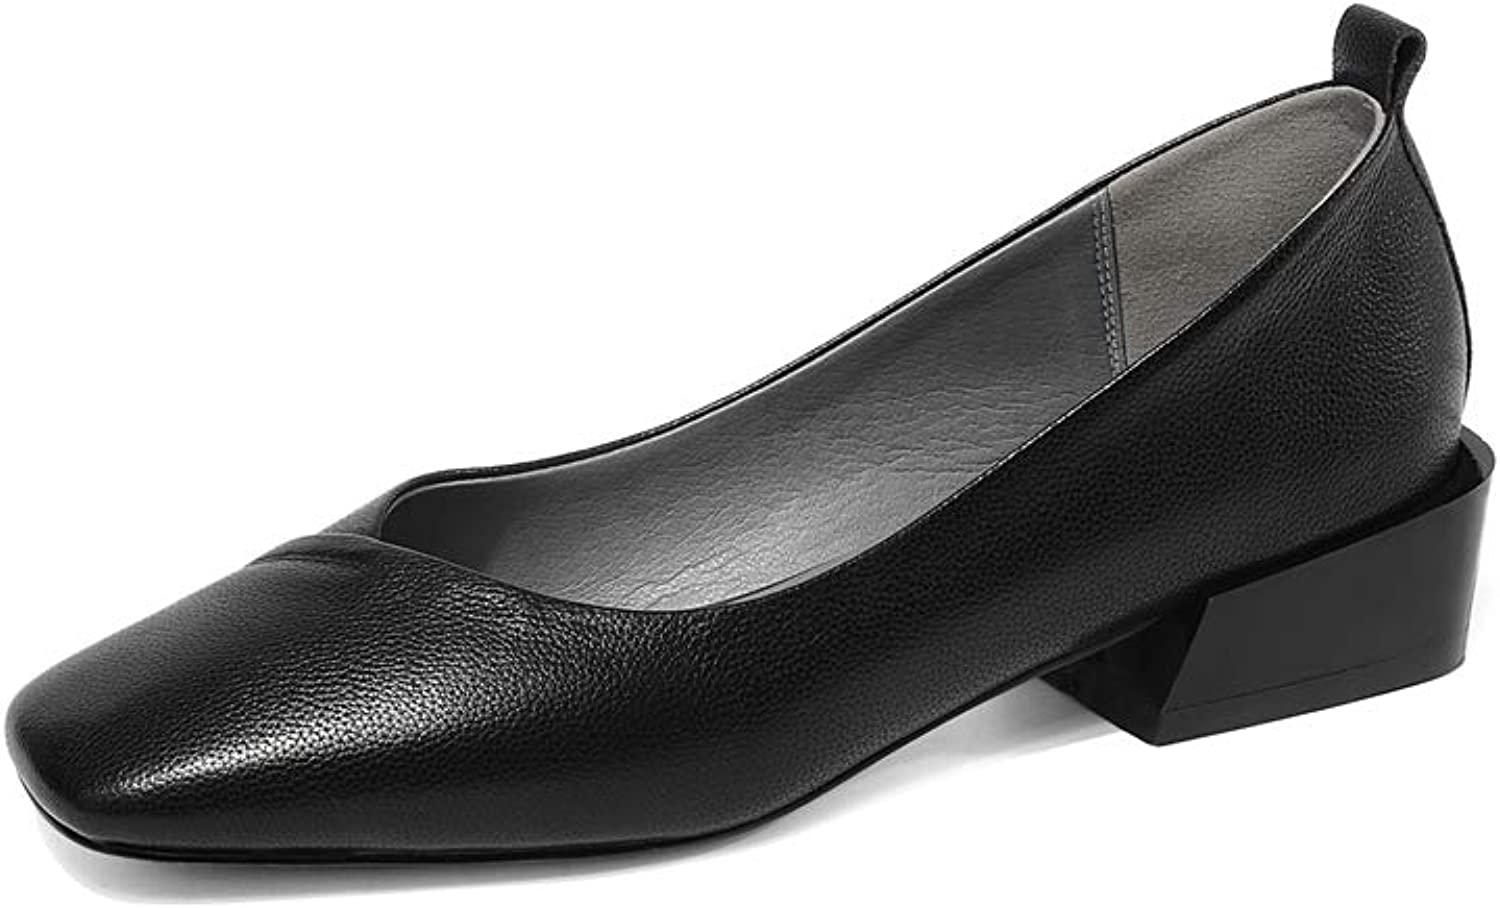 Dulce Diva Cow Leather Square Toe Low Heel Slip On Handmade Pumps for Women Soft